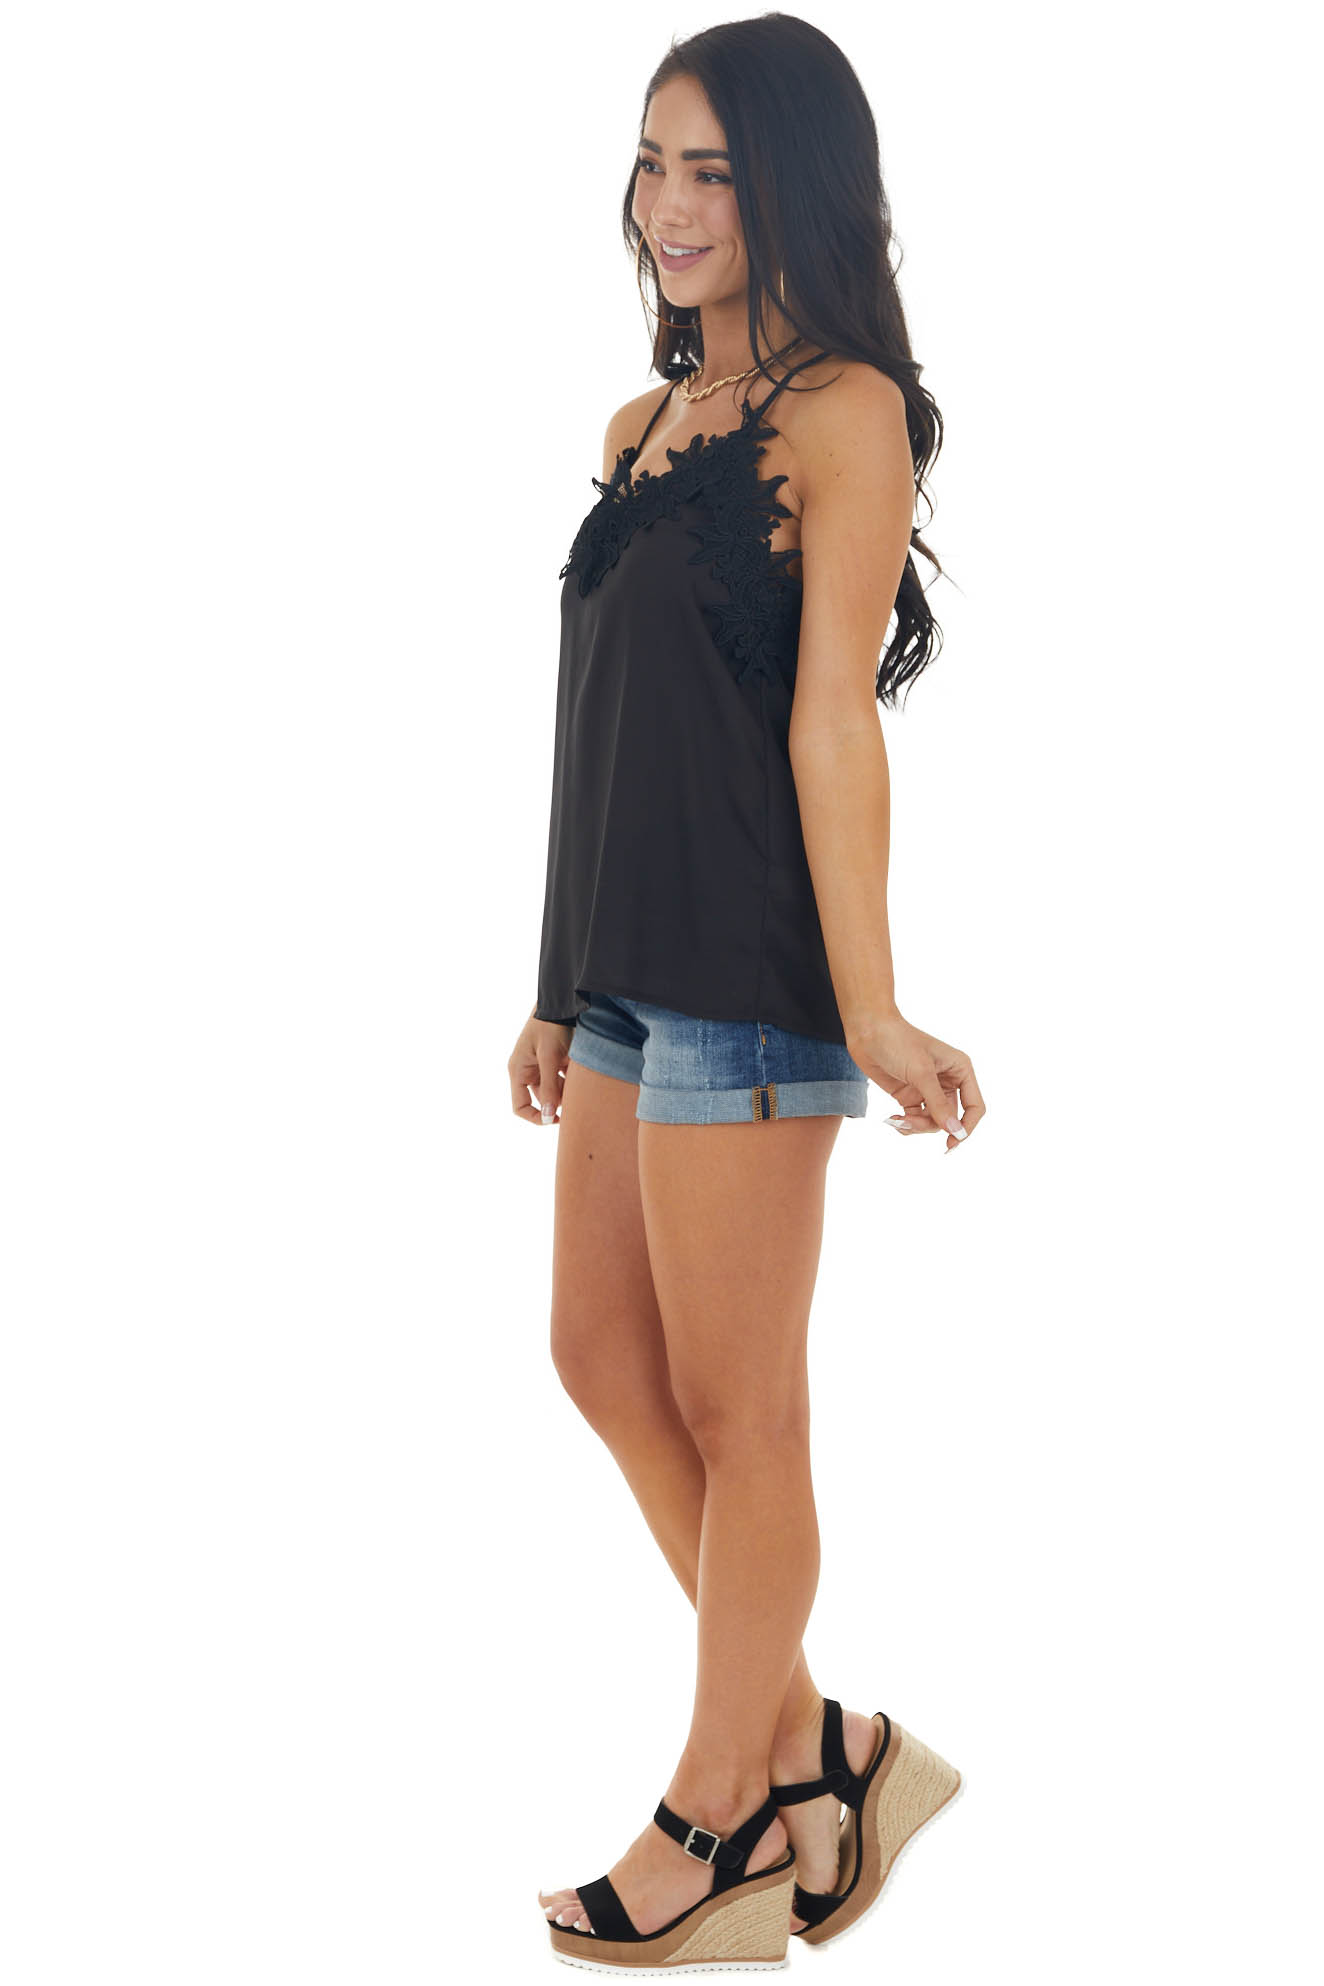 Black Lace Cami Woven Tank Top with Adjustable Straps